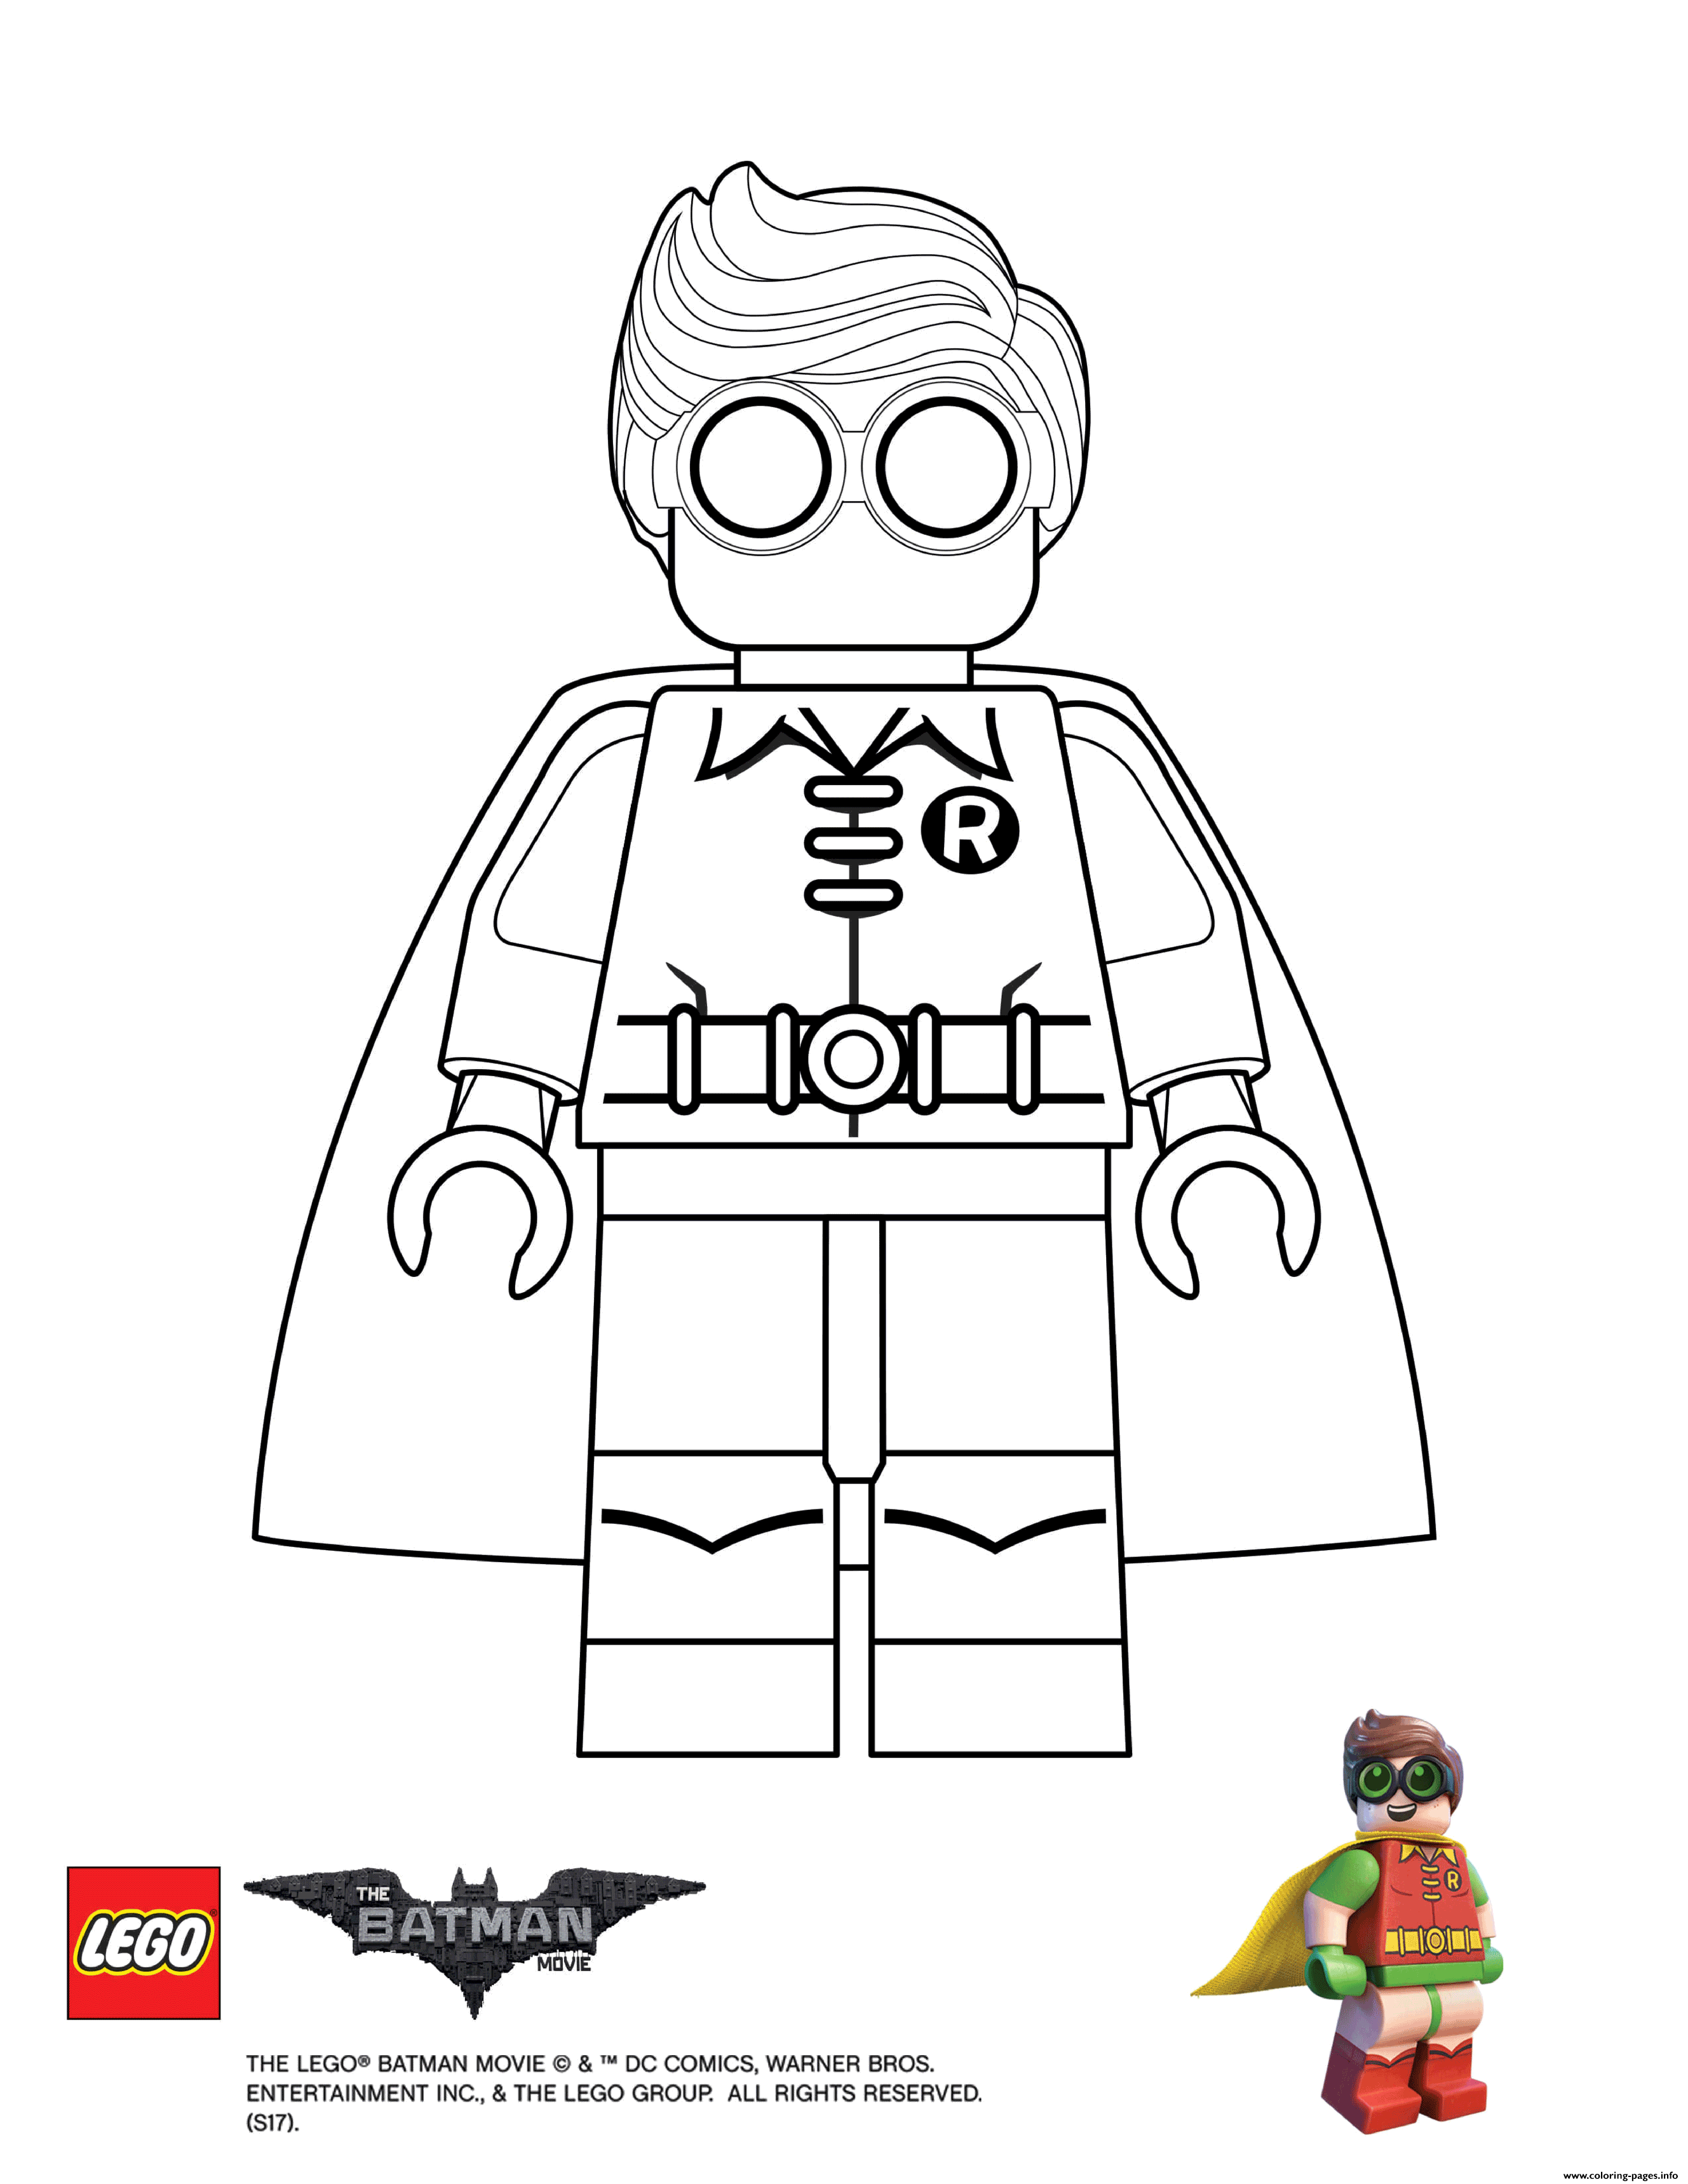 Lego batman coloring pages printable - timeless-miracle.com | 3438x2657